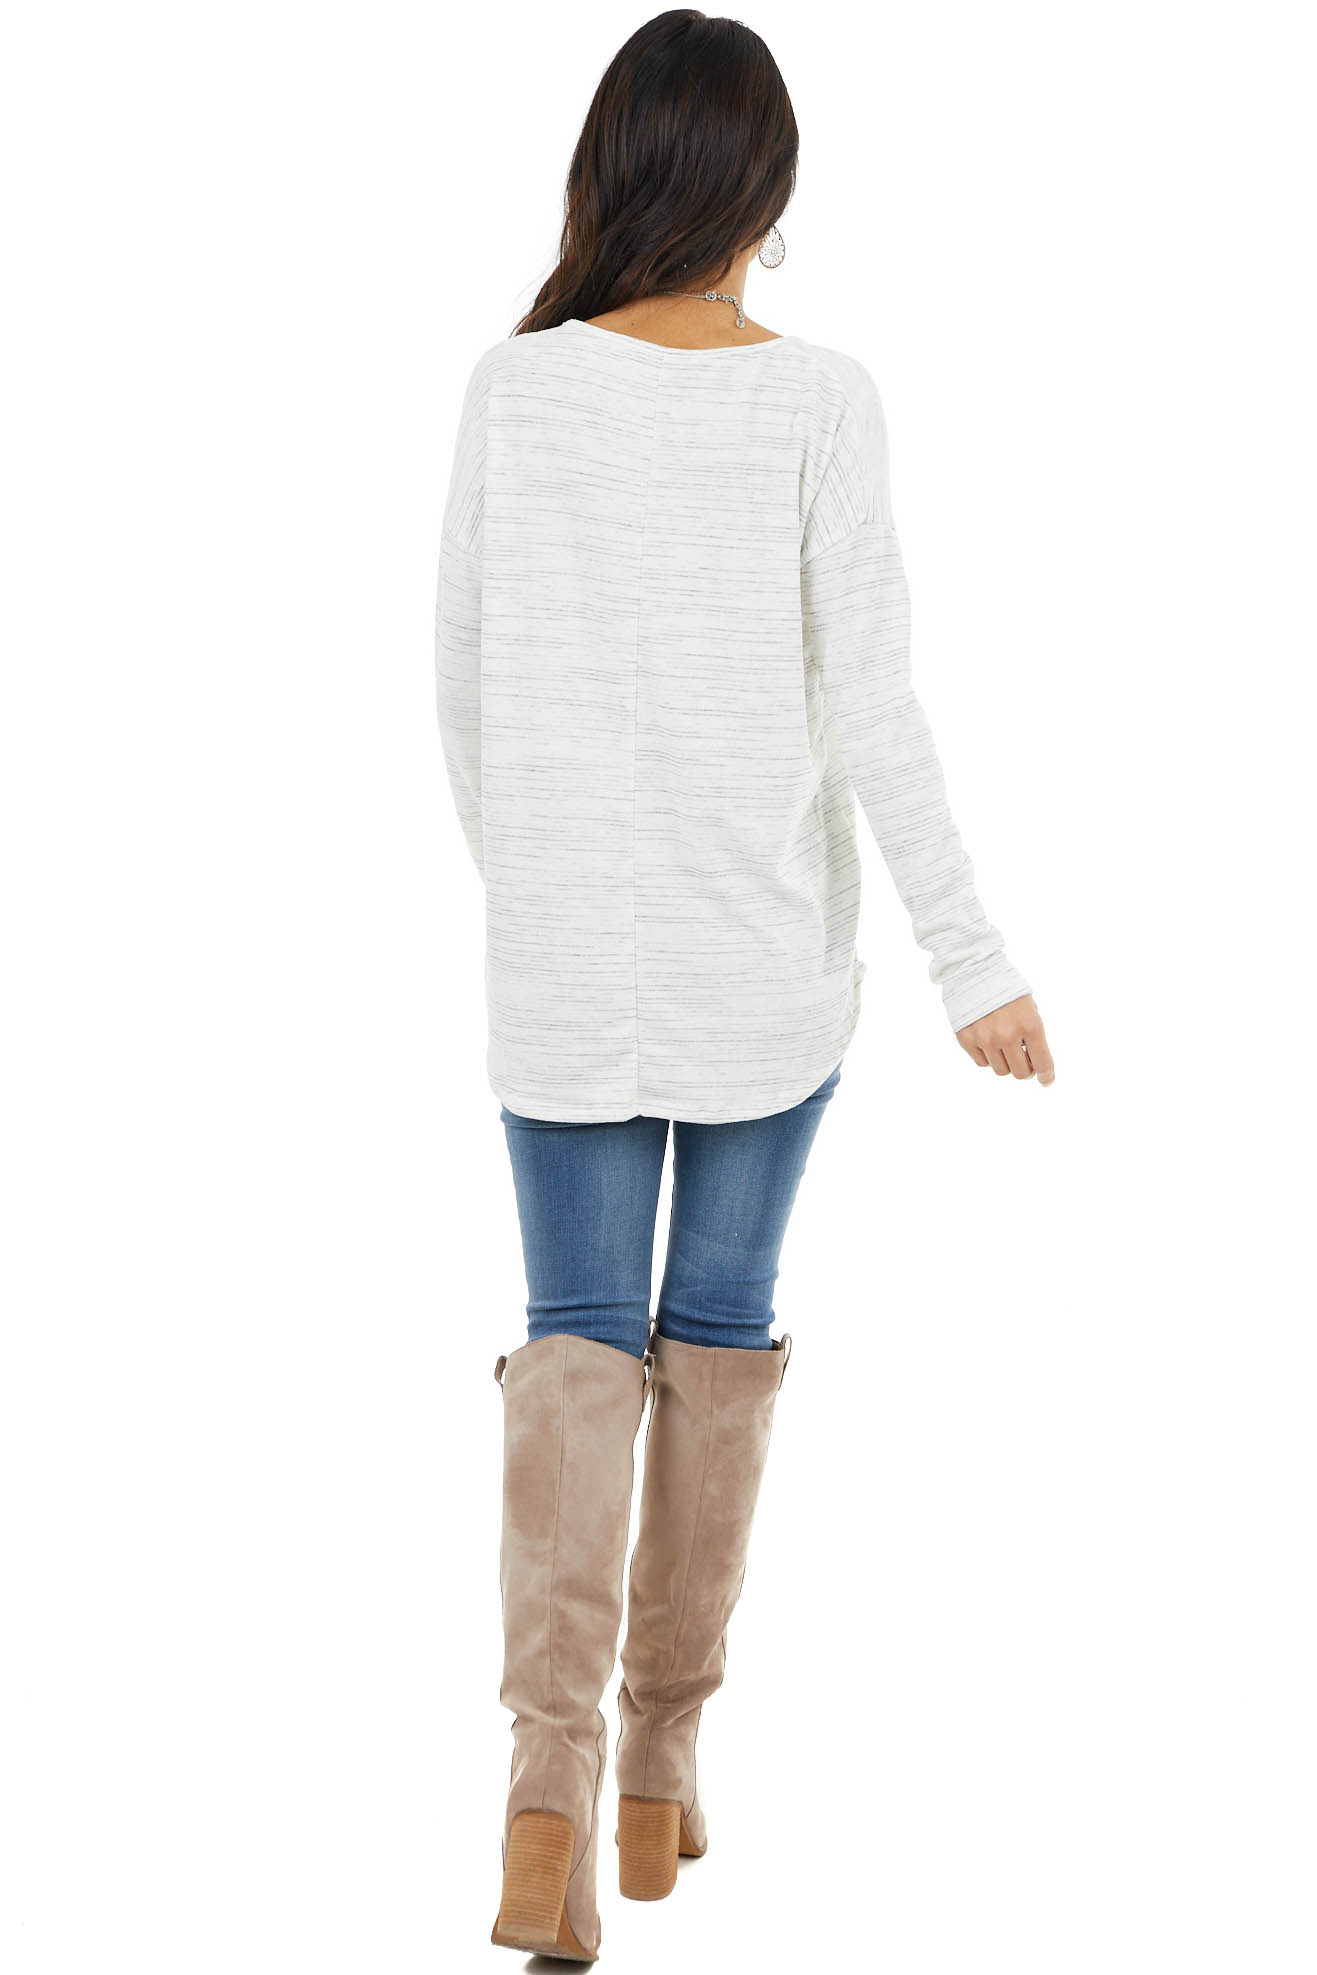 Dove Grey Stripe Patterned Top with Long Sleeves